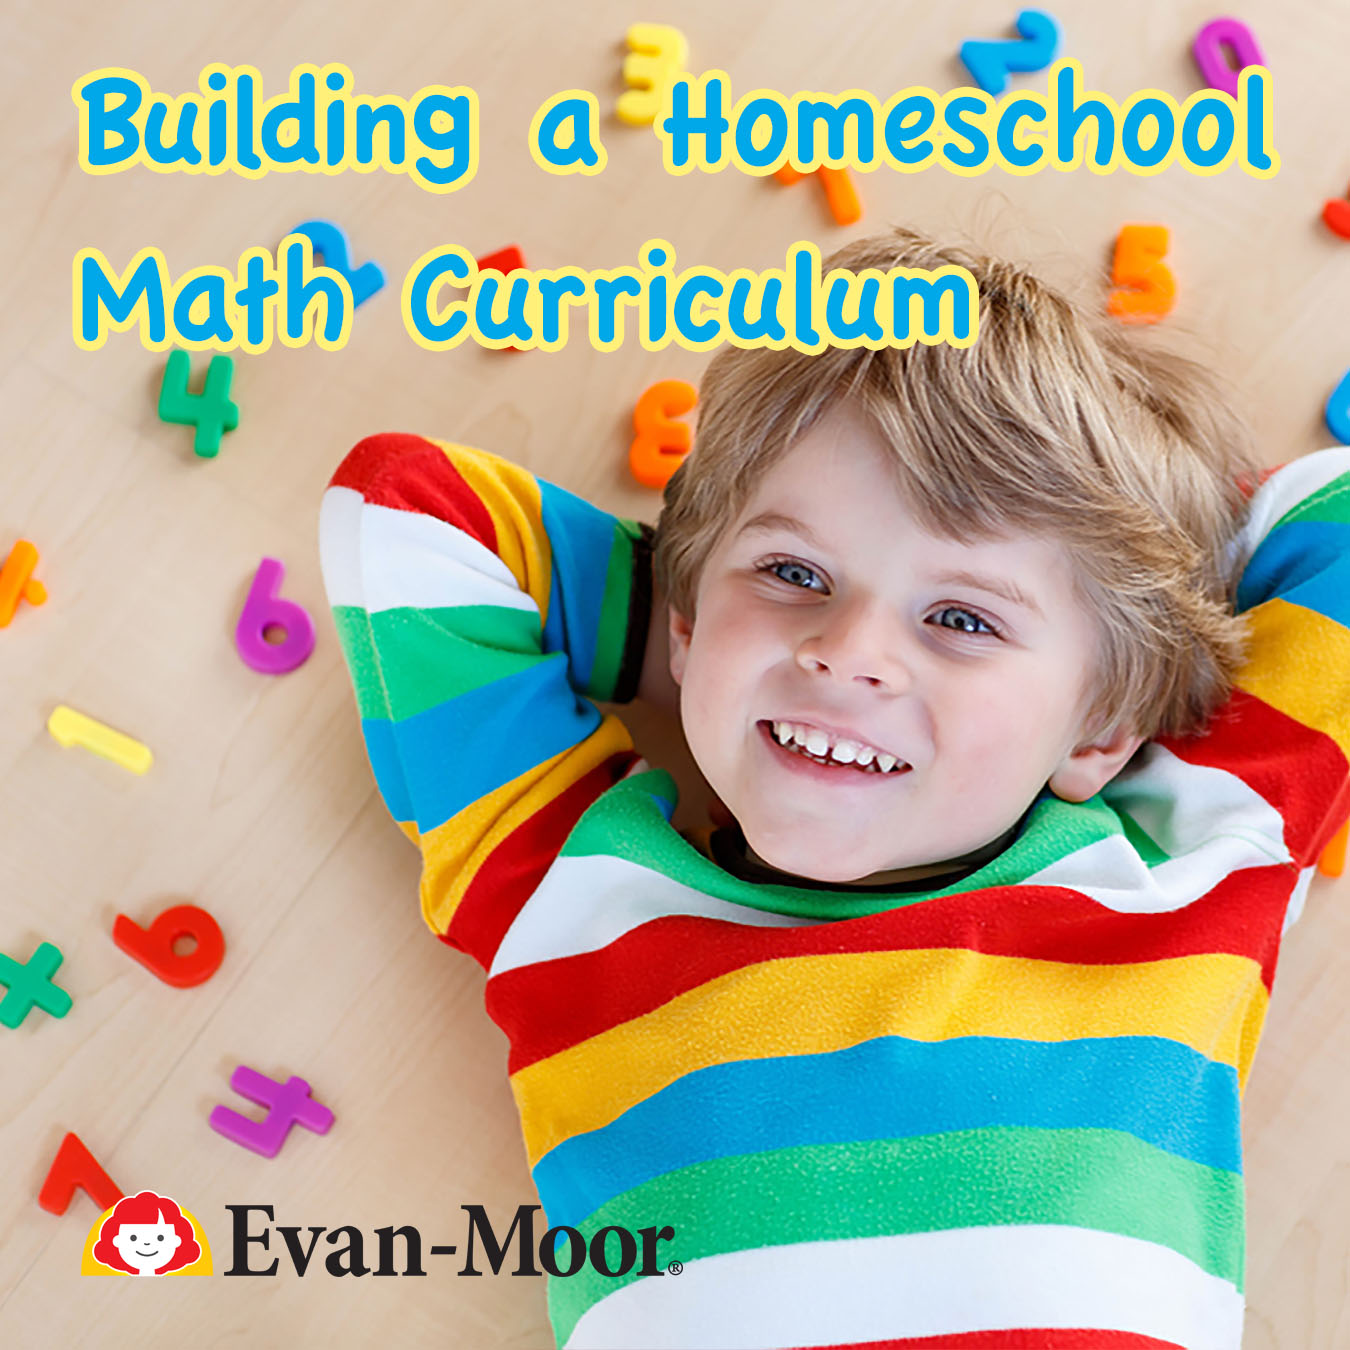 Building a Homeschool Math Curriculum - The Joy of Teaching